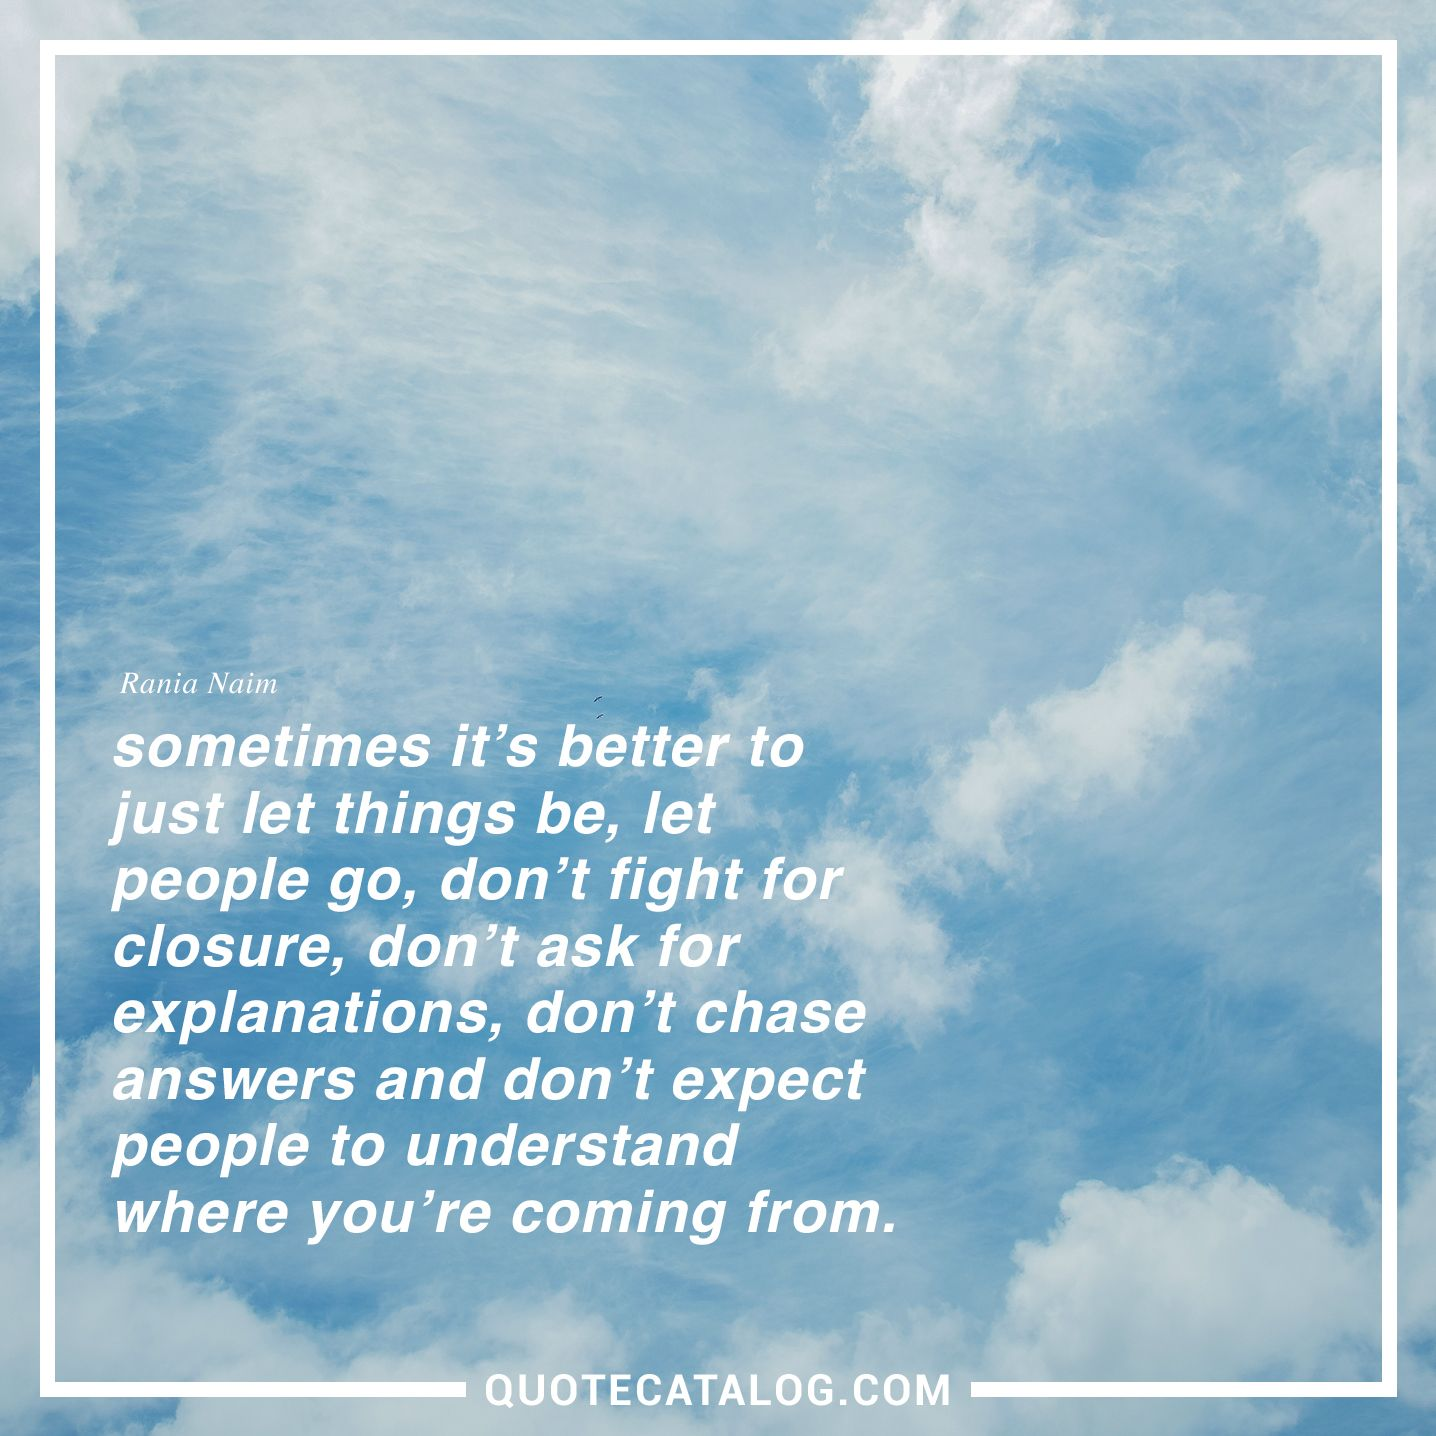 Rania Naim Quote Sometimes Its Better To Just Let Things